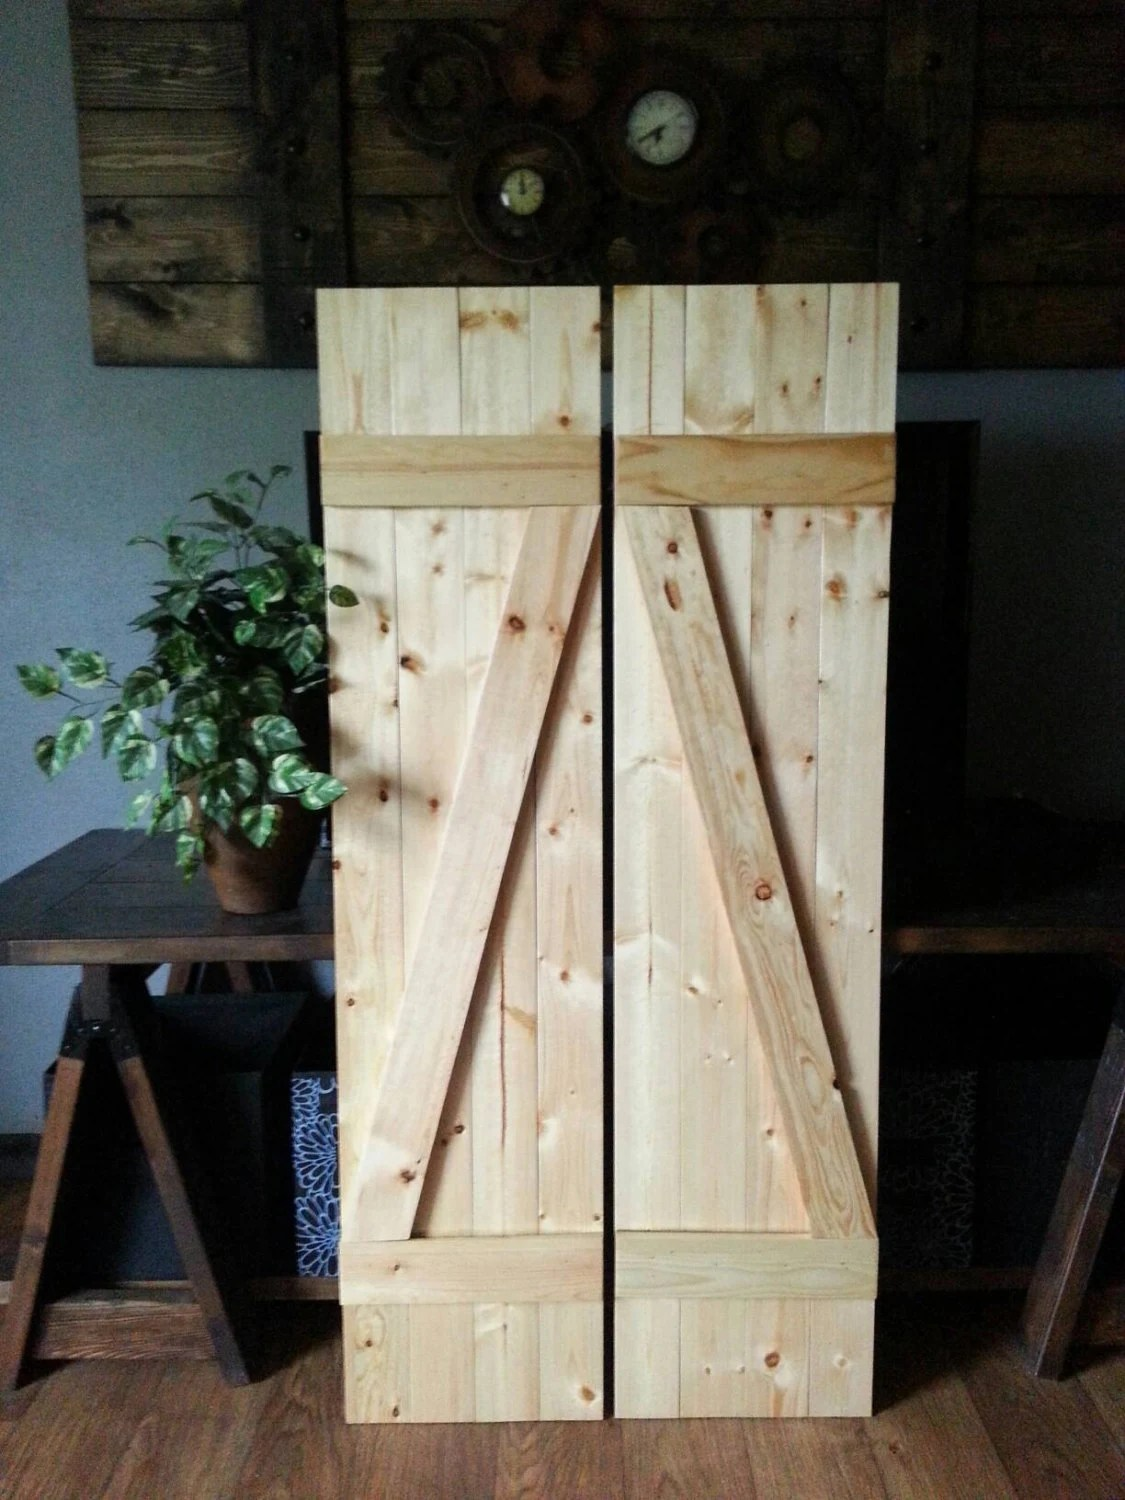 Stunning Z Bar Rustic Wood Shutters Wooden Shutters Barnwood Style Interior Decorative Shutters Rustic Home Decor Z Bar Rustic Wood Shutters Wooden Shutters Barnwood Style home decor Rustic Wood Home Decor